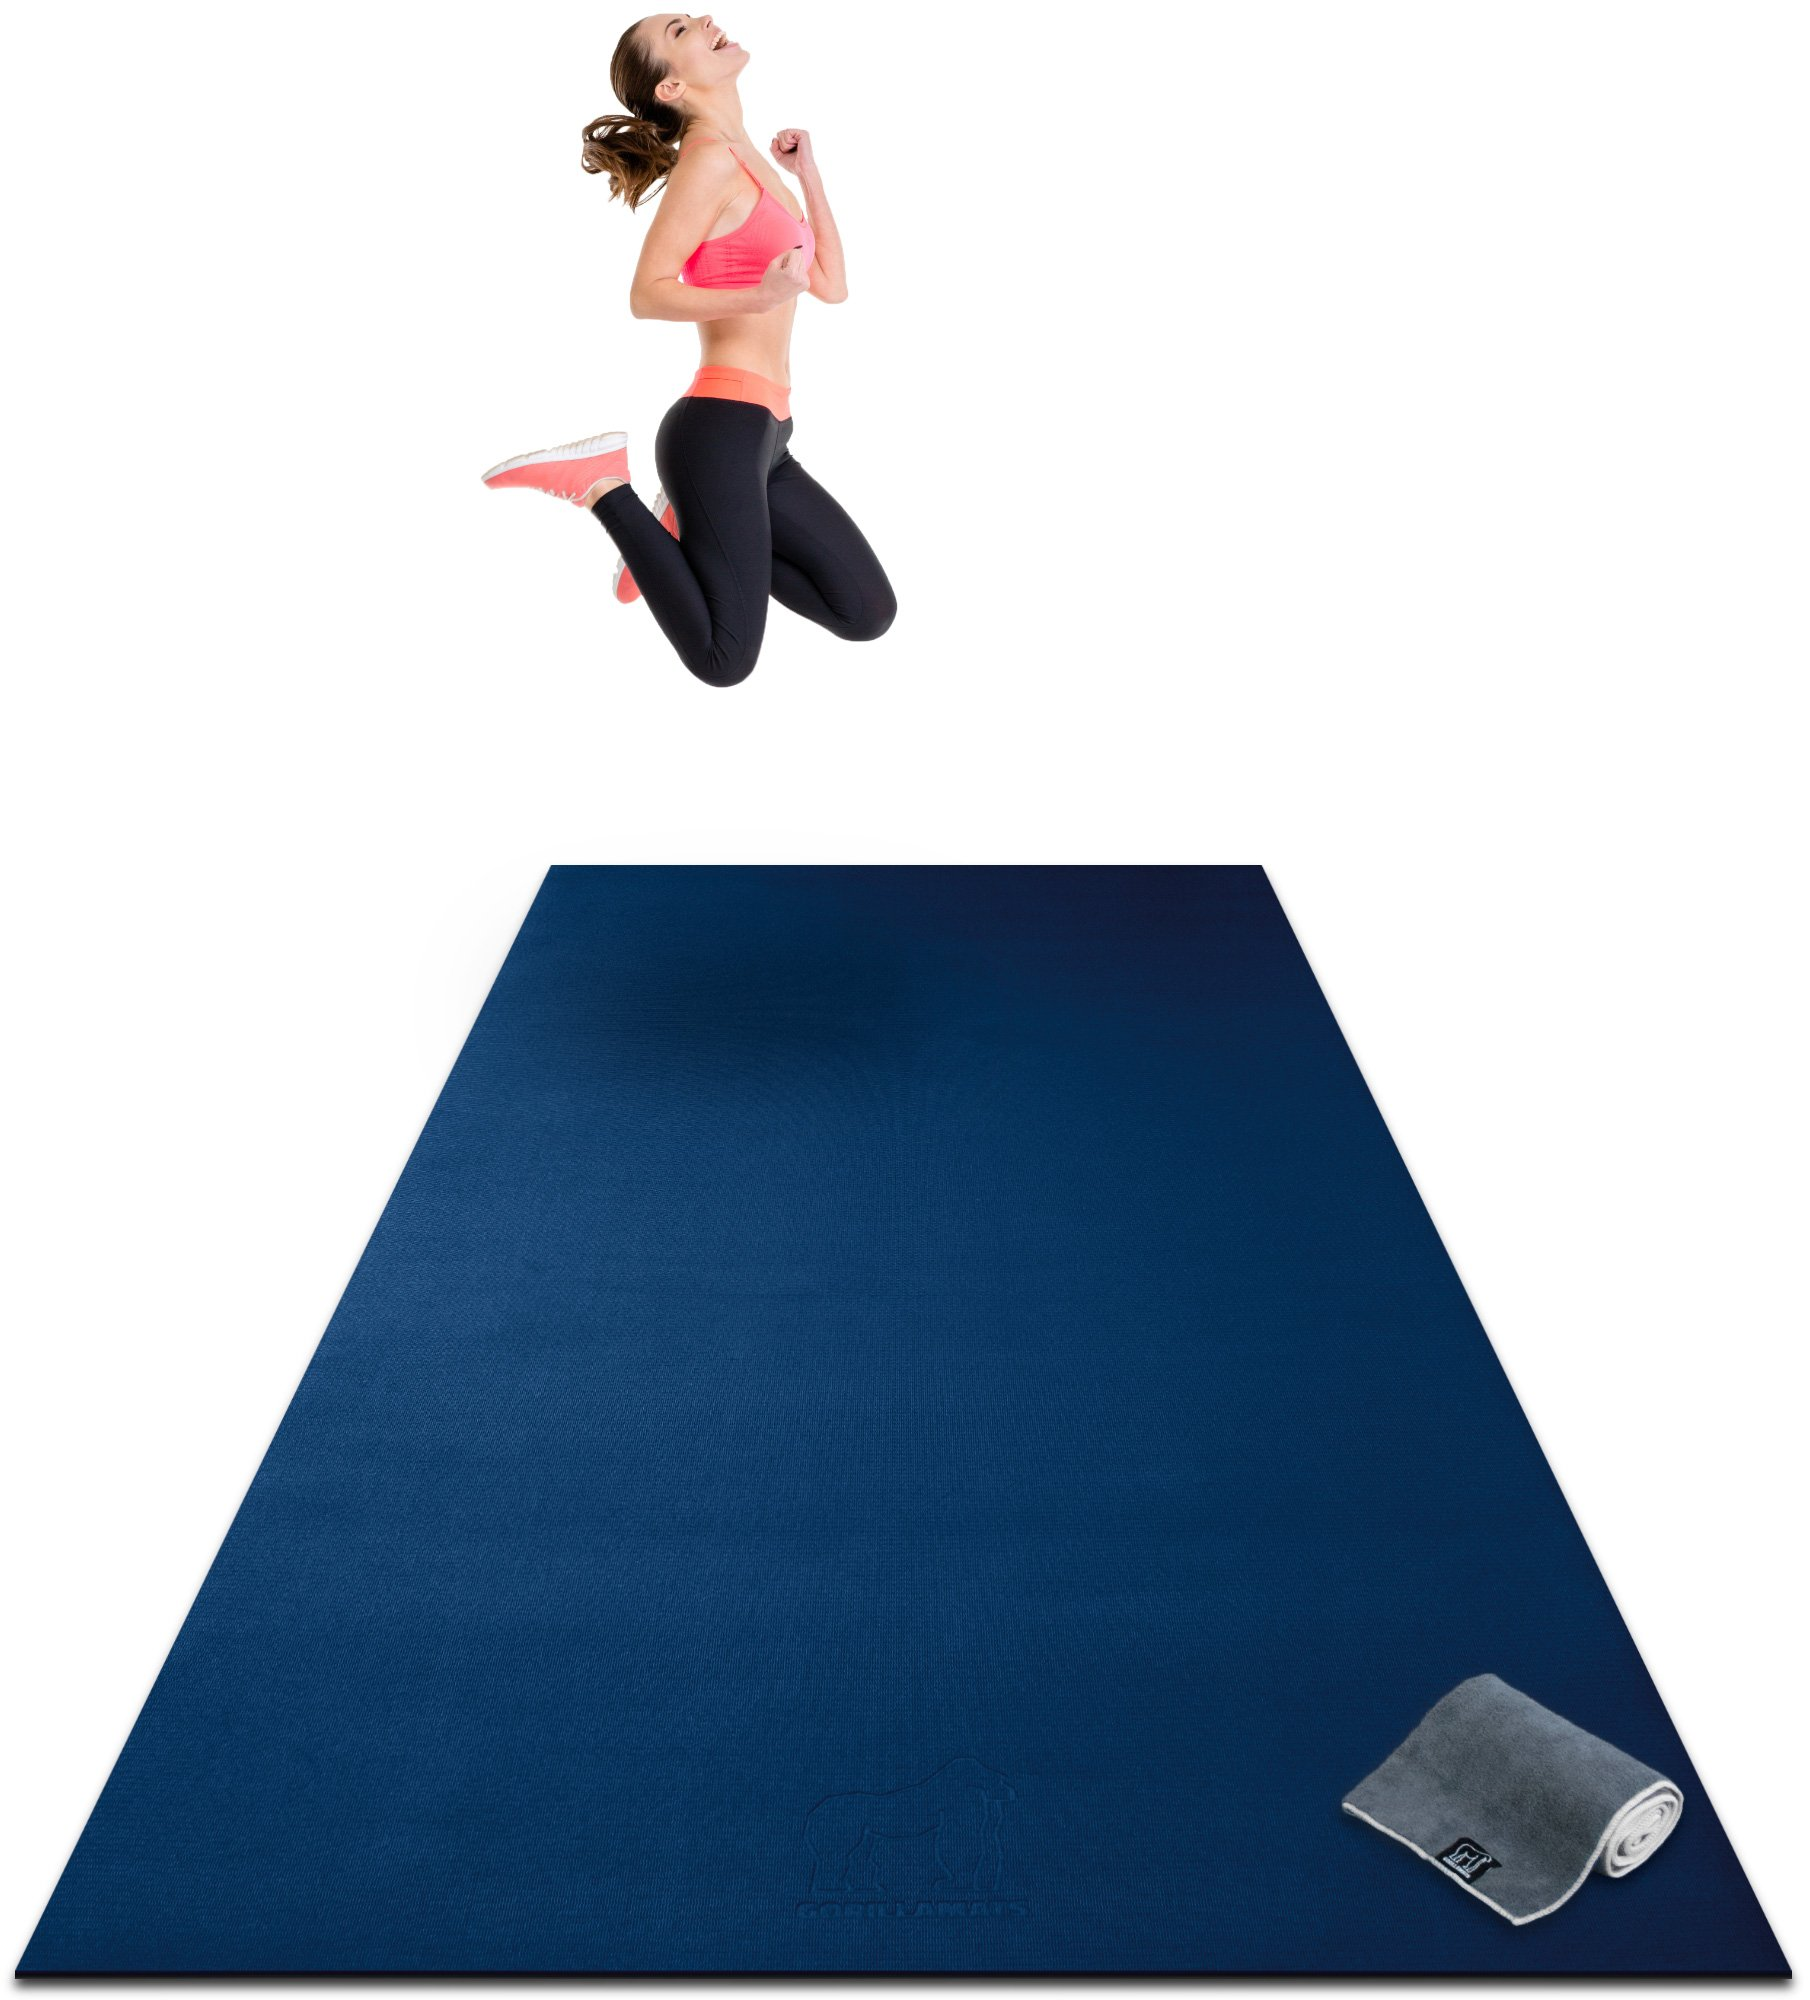 Premium Extra Large Exercise Mat - 10' x 4' x 1/4'' Ultra Durable, Non-Slip, Workout Mats for Home Gym Flooring - Plyo, MMA, Cardio Mat - Use with or Without Shoes (120'' Long x 48'' Wide x 6mm Thick)